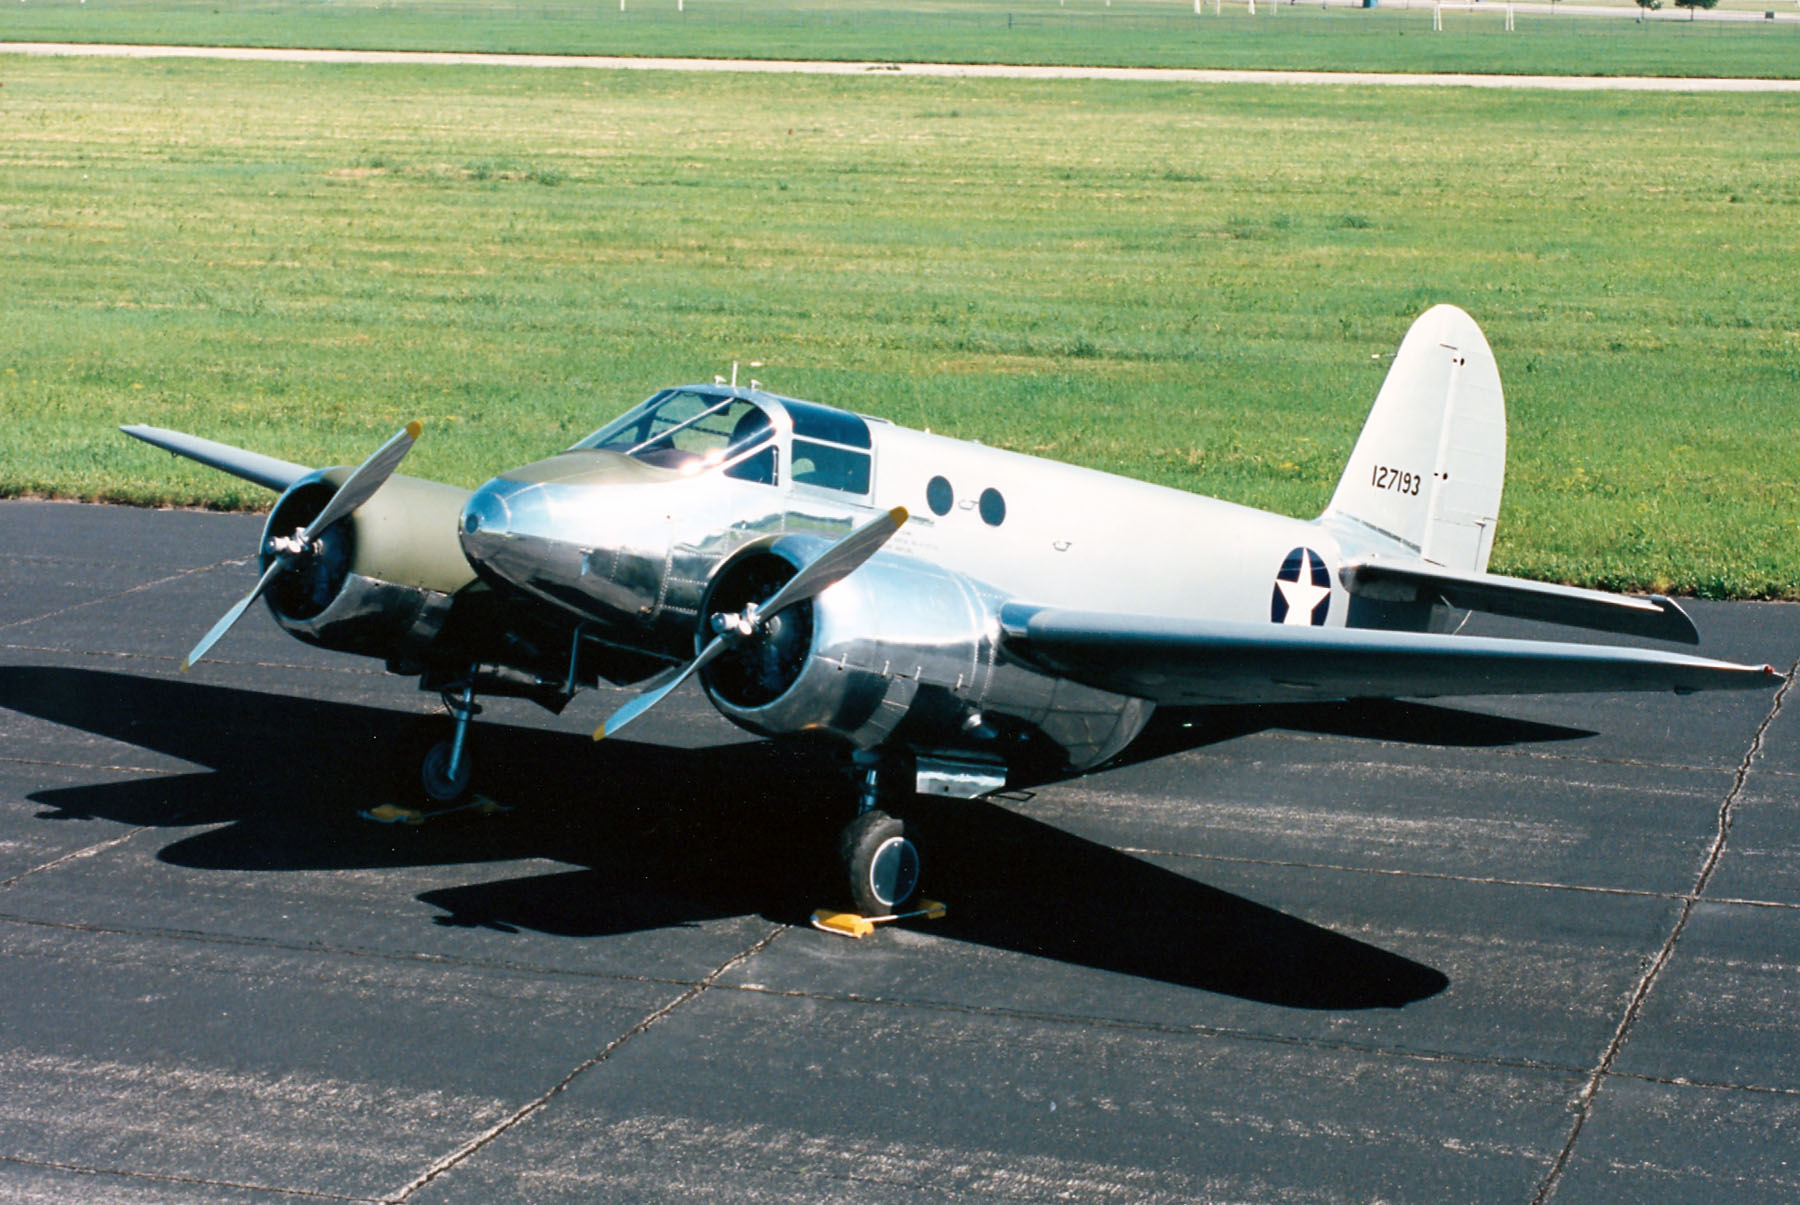 AT-10 Wichita 41-27193 at the National Museum of the United States Air Force. (U.S. Air Force photo)